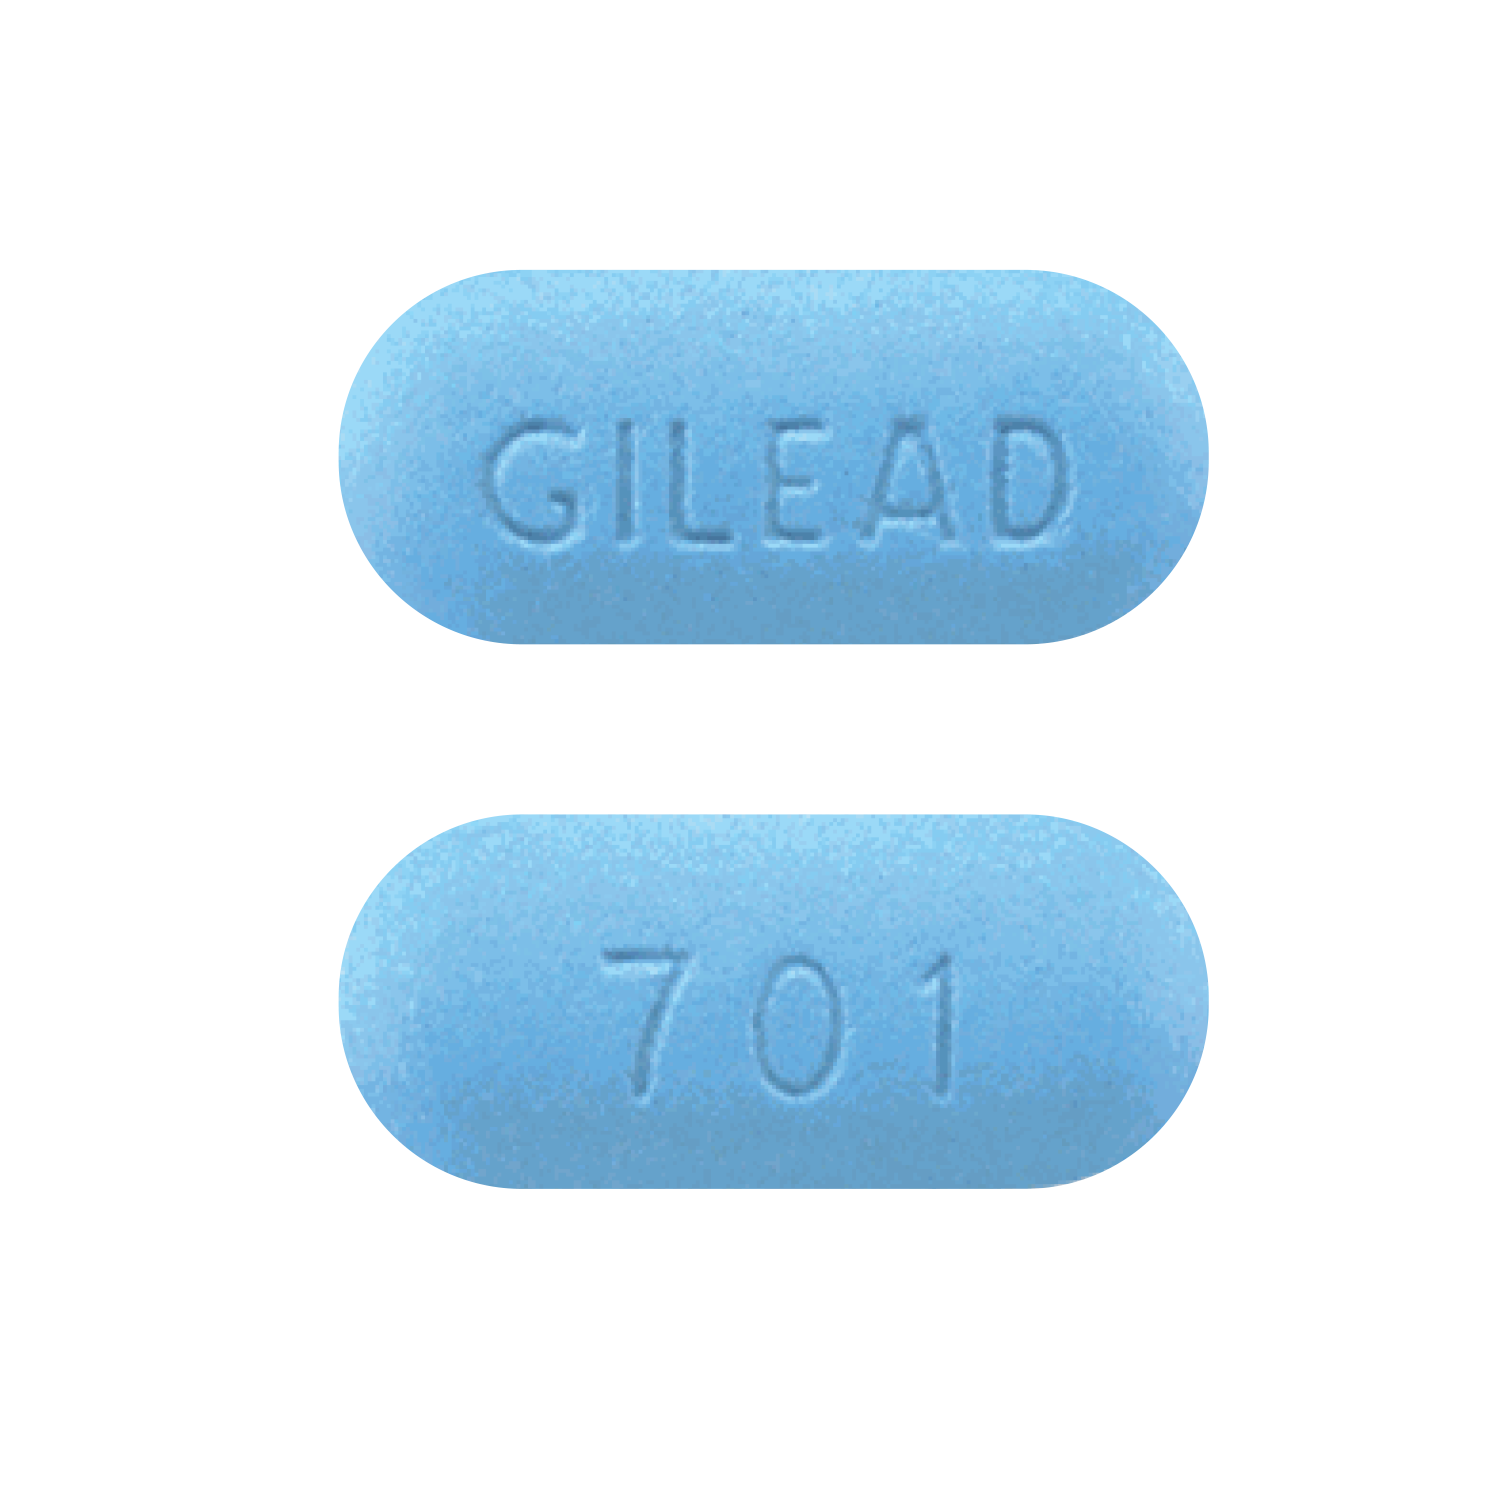 PrEP pill GILEAD 01 Pulse Clinic.png (244 KB)